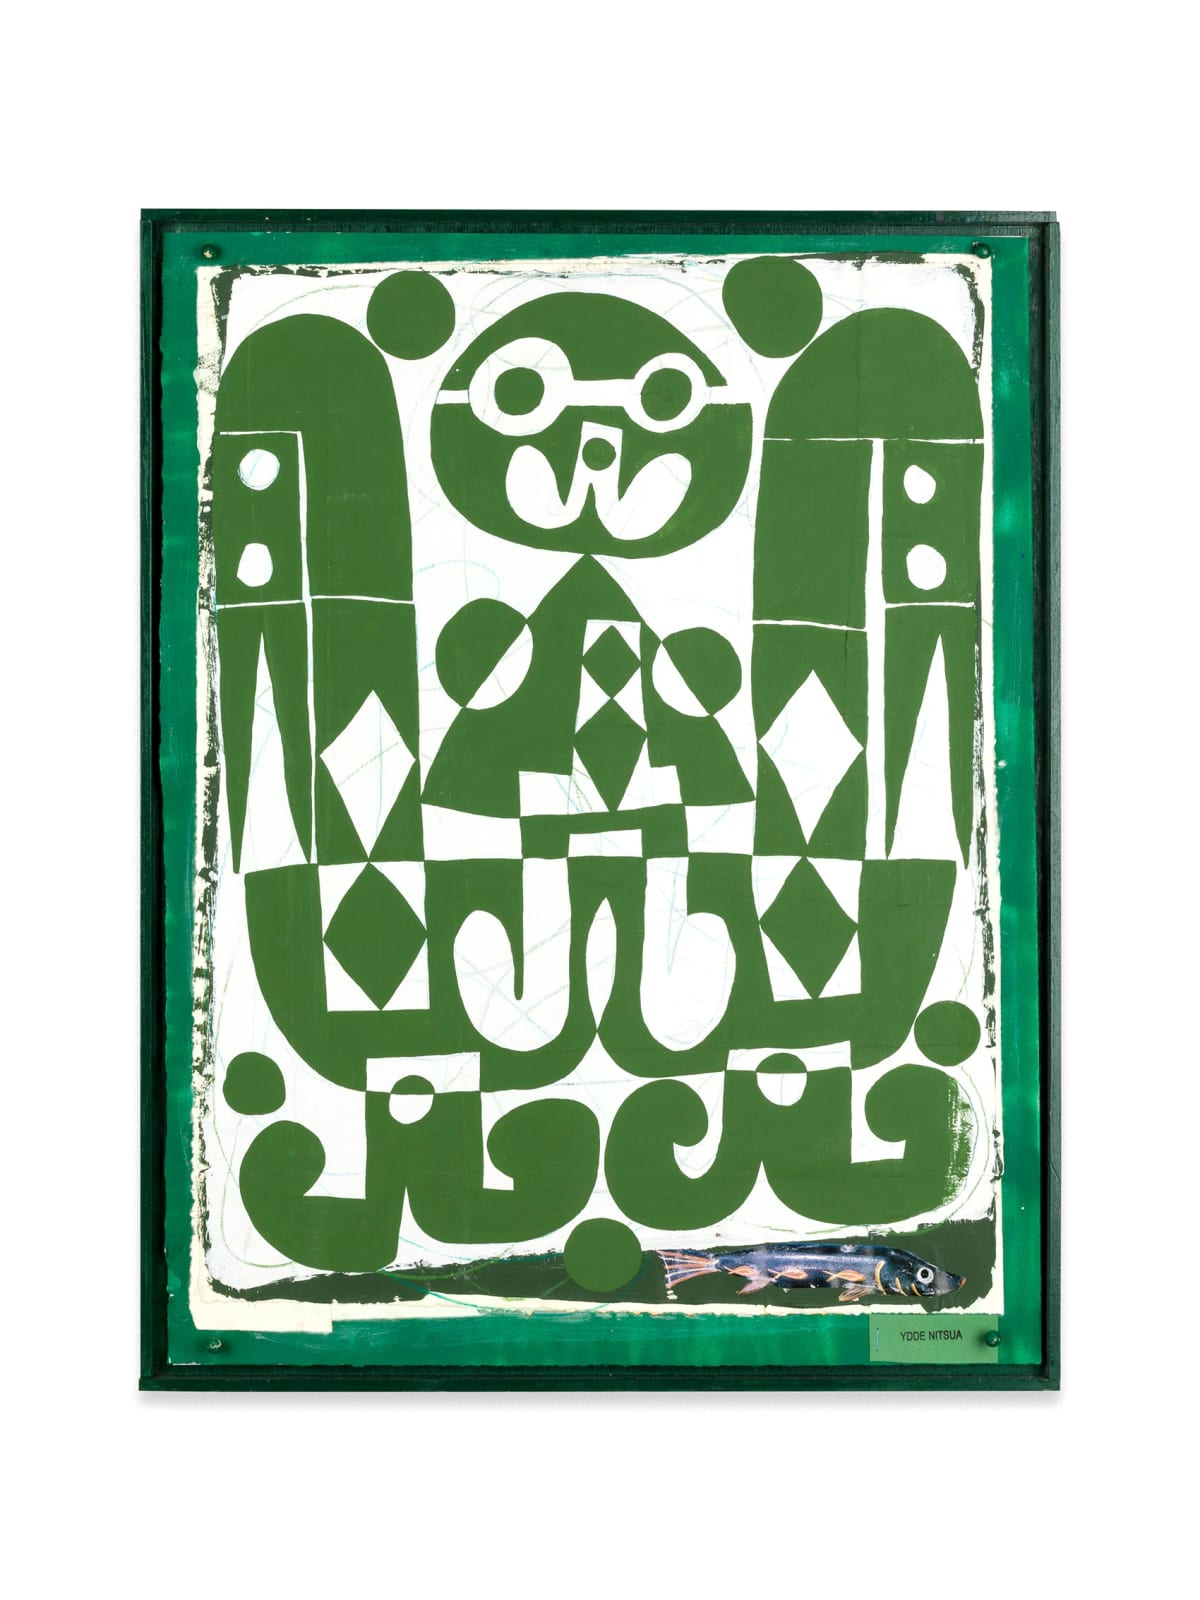 Austin eddy, spotlight, featured, hans gallery, a green and white collage of a boy and at the bottom right is a cutout of a blue fish